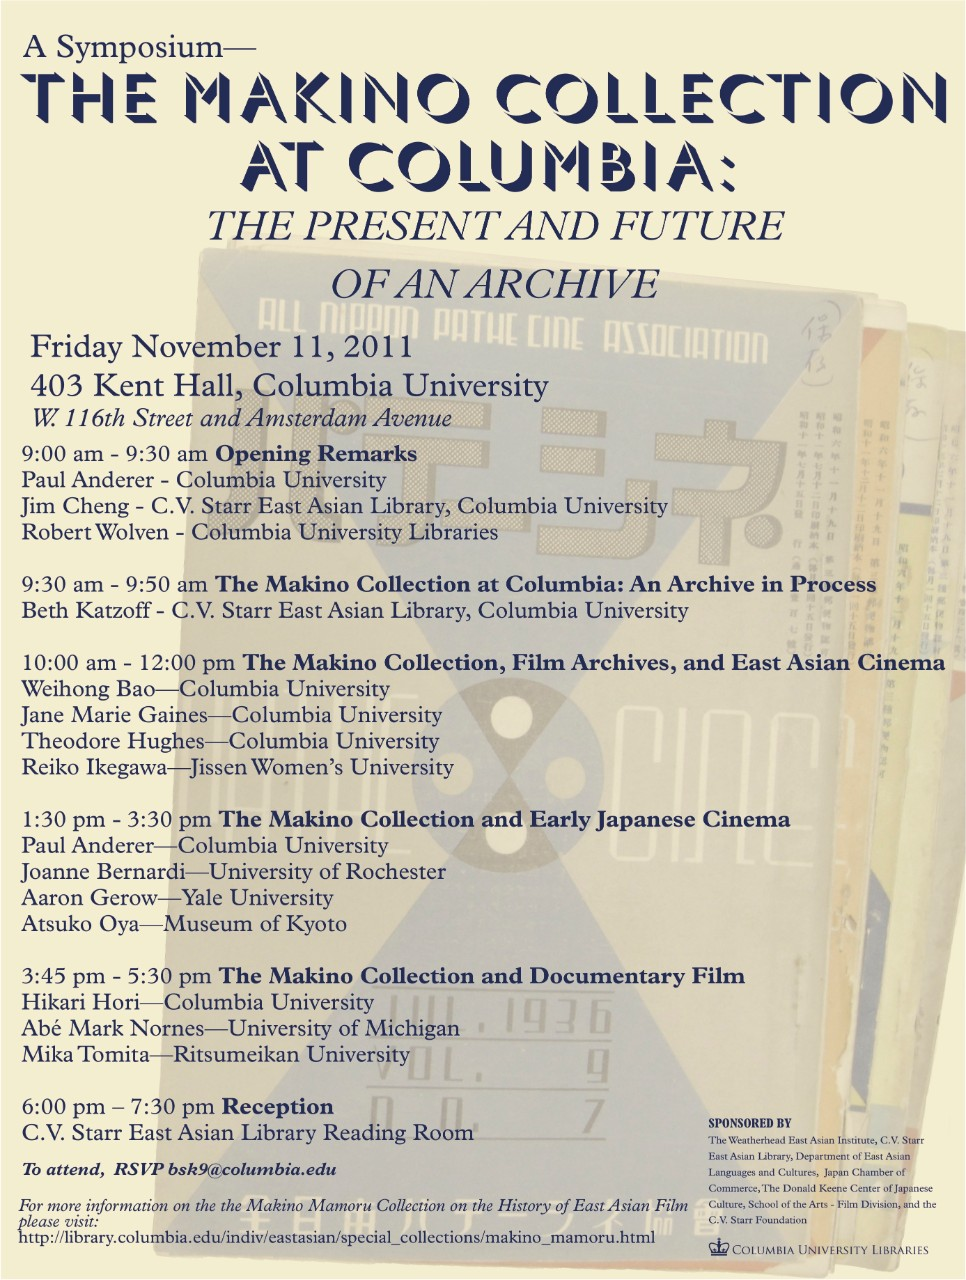 Symposium - The Makino Collection at Columbia